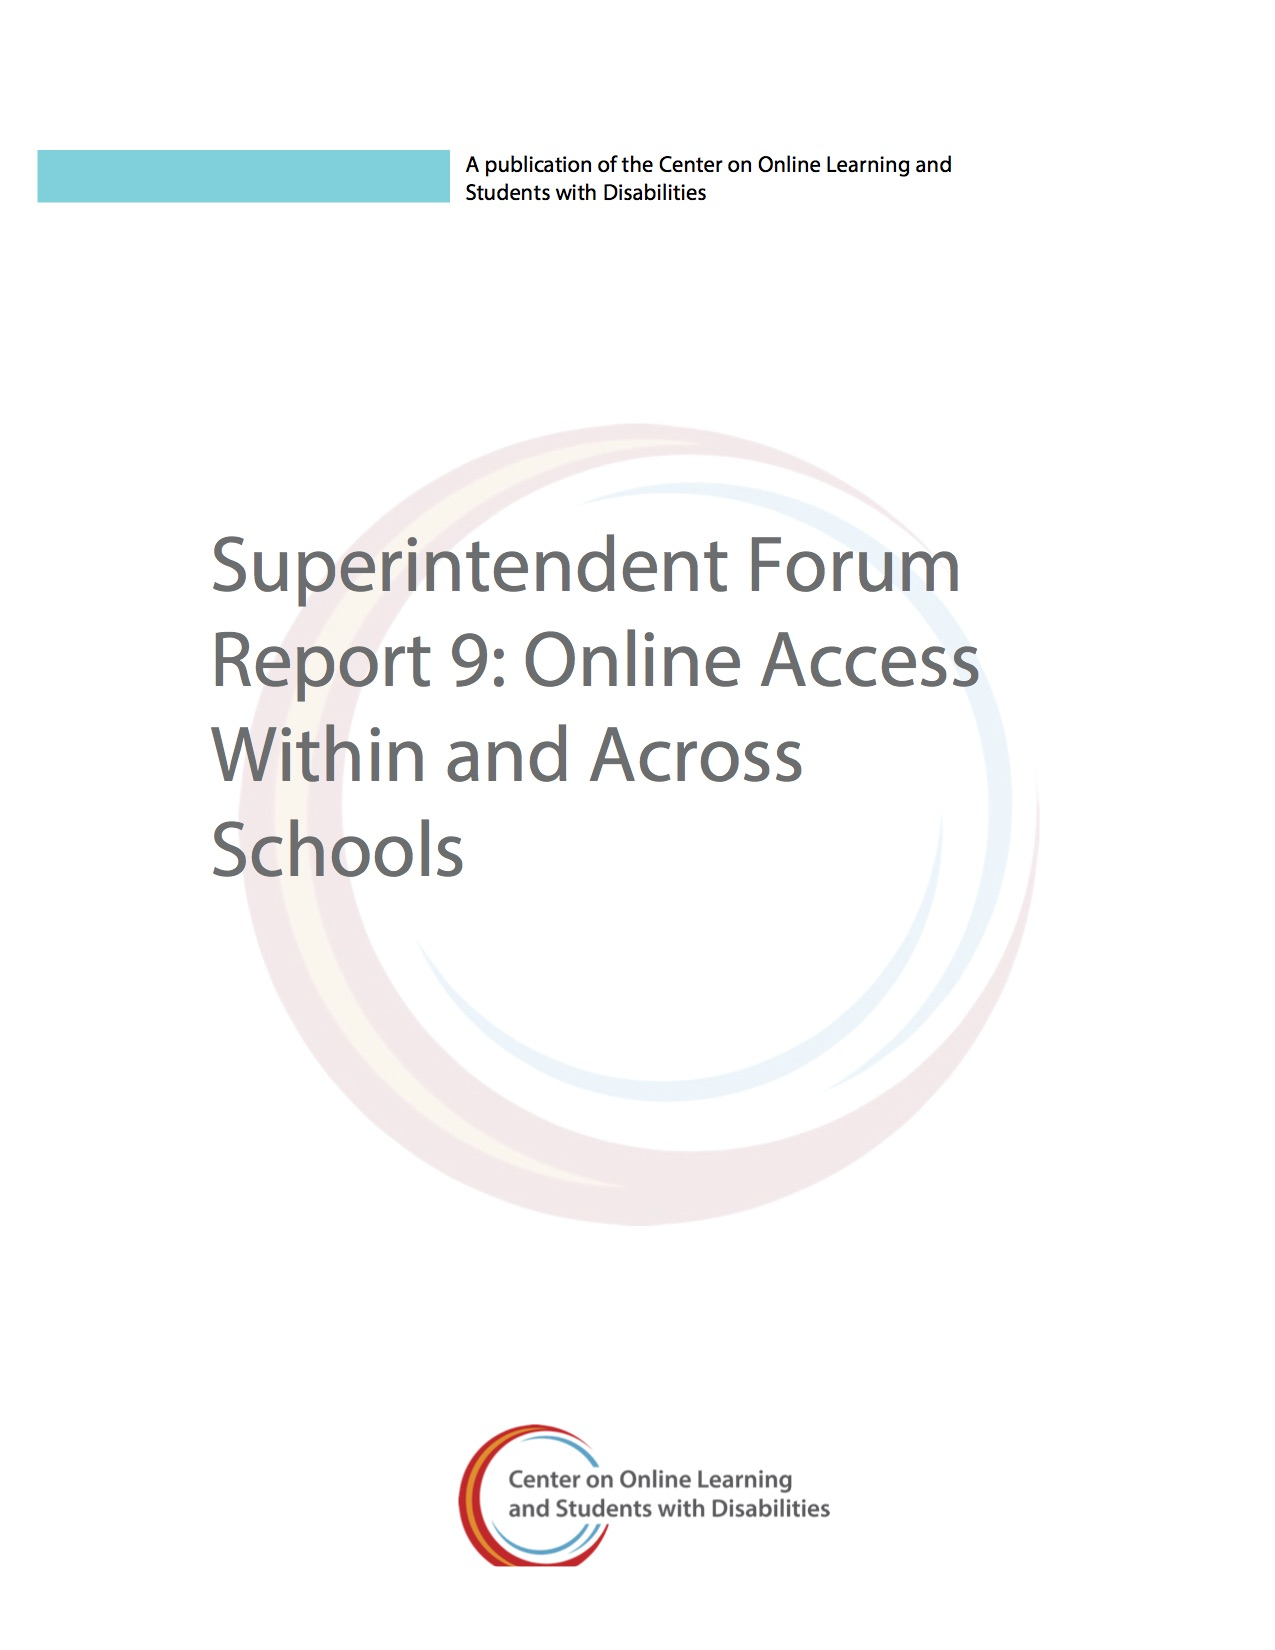 Superintendent Forum Report 9: Online Access Within And Across Schools